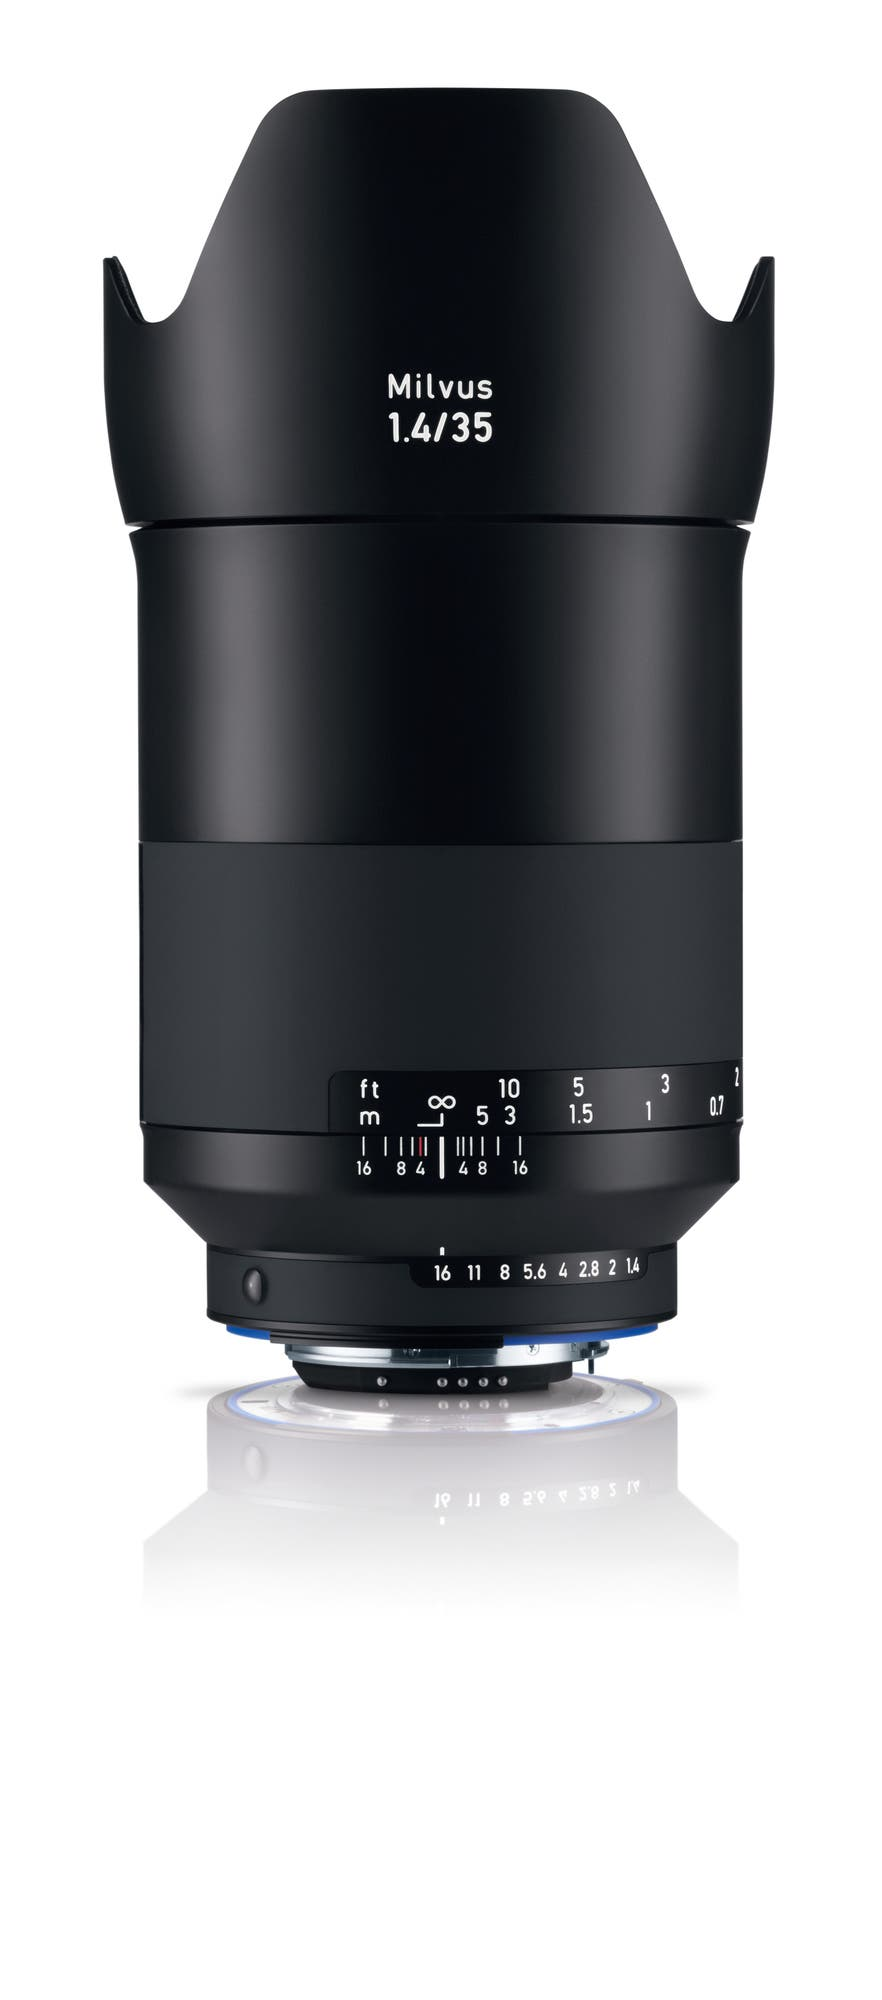 The New Zeiss 35mm f1.4 Milvus Lens Is Being Targeted at Portrait Photographers